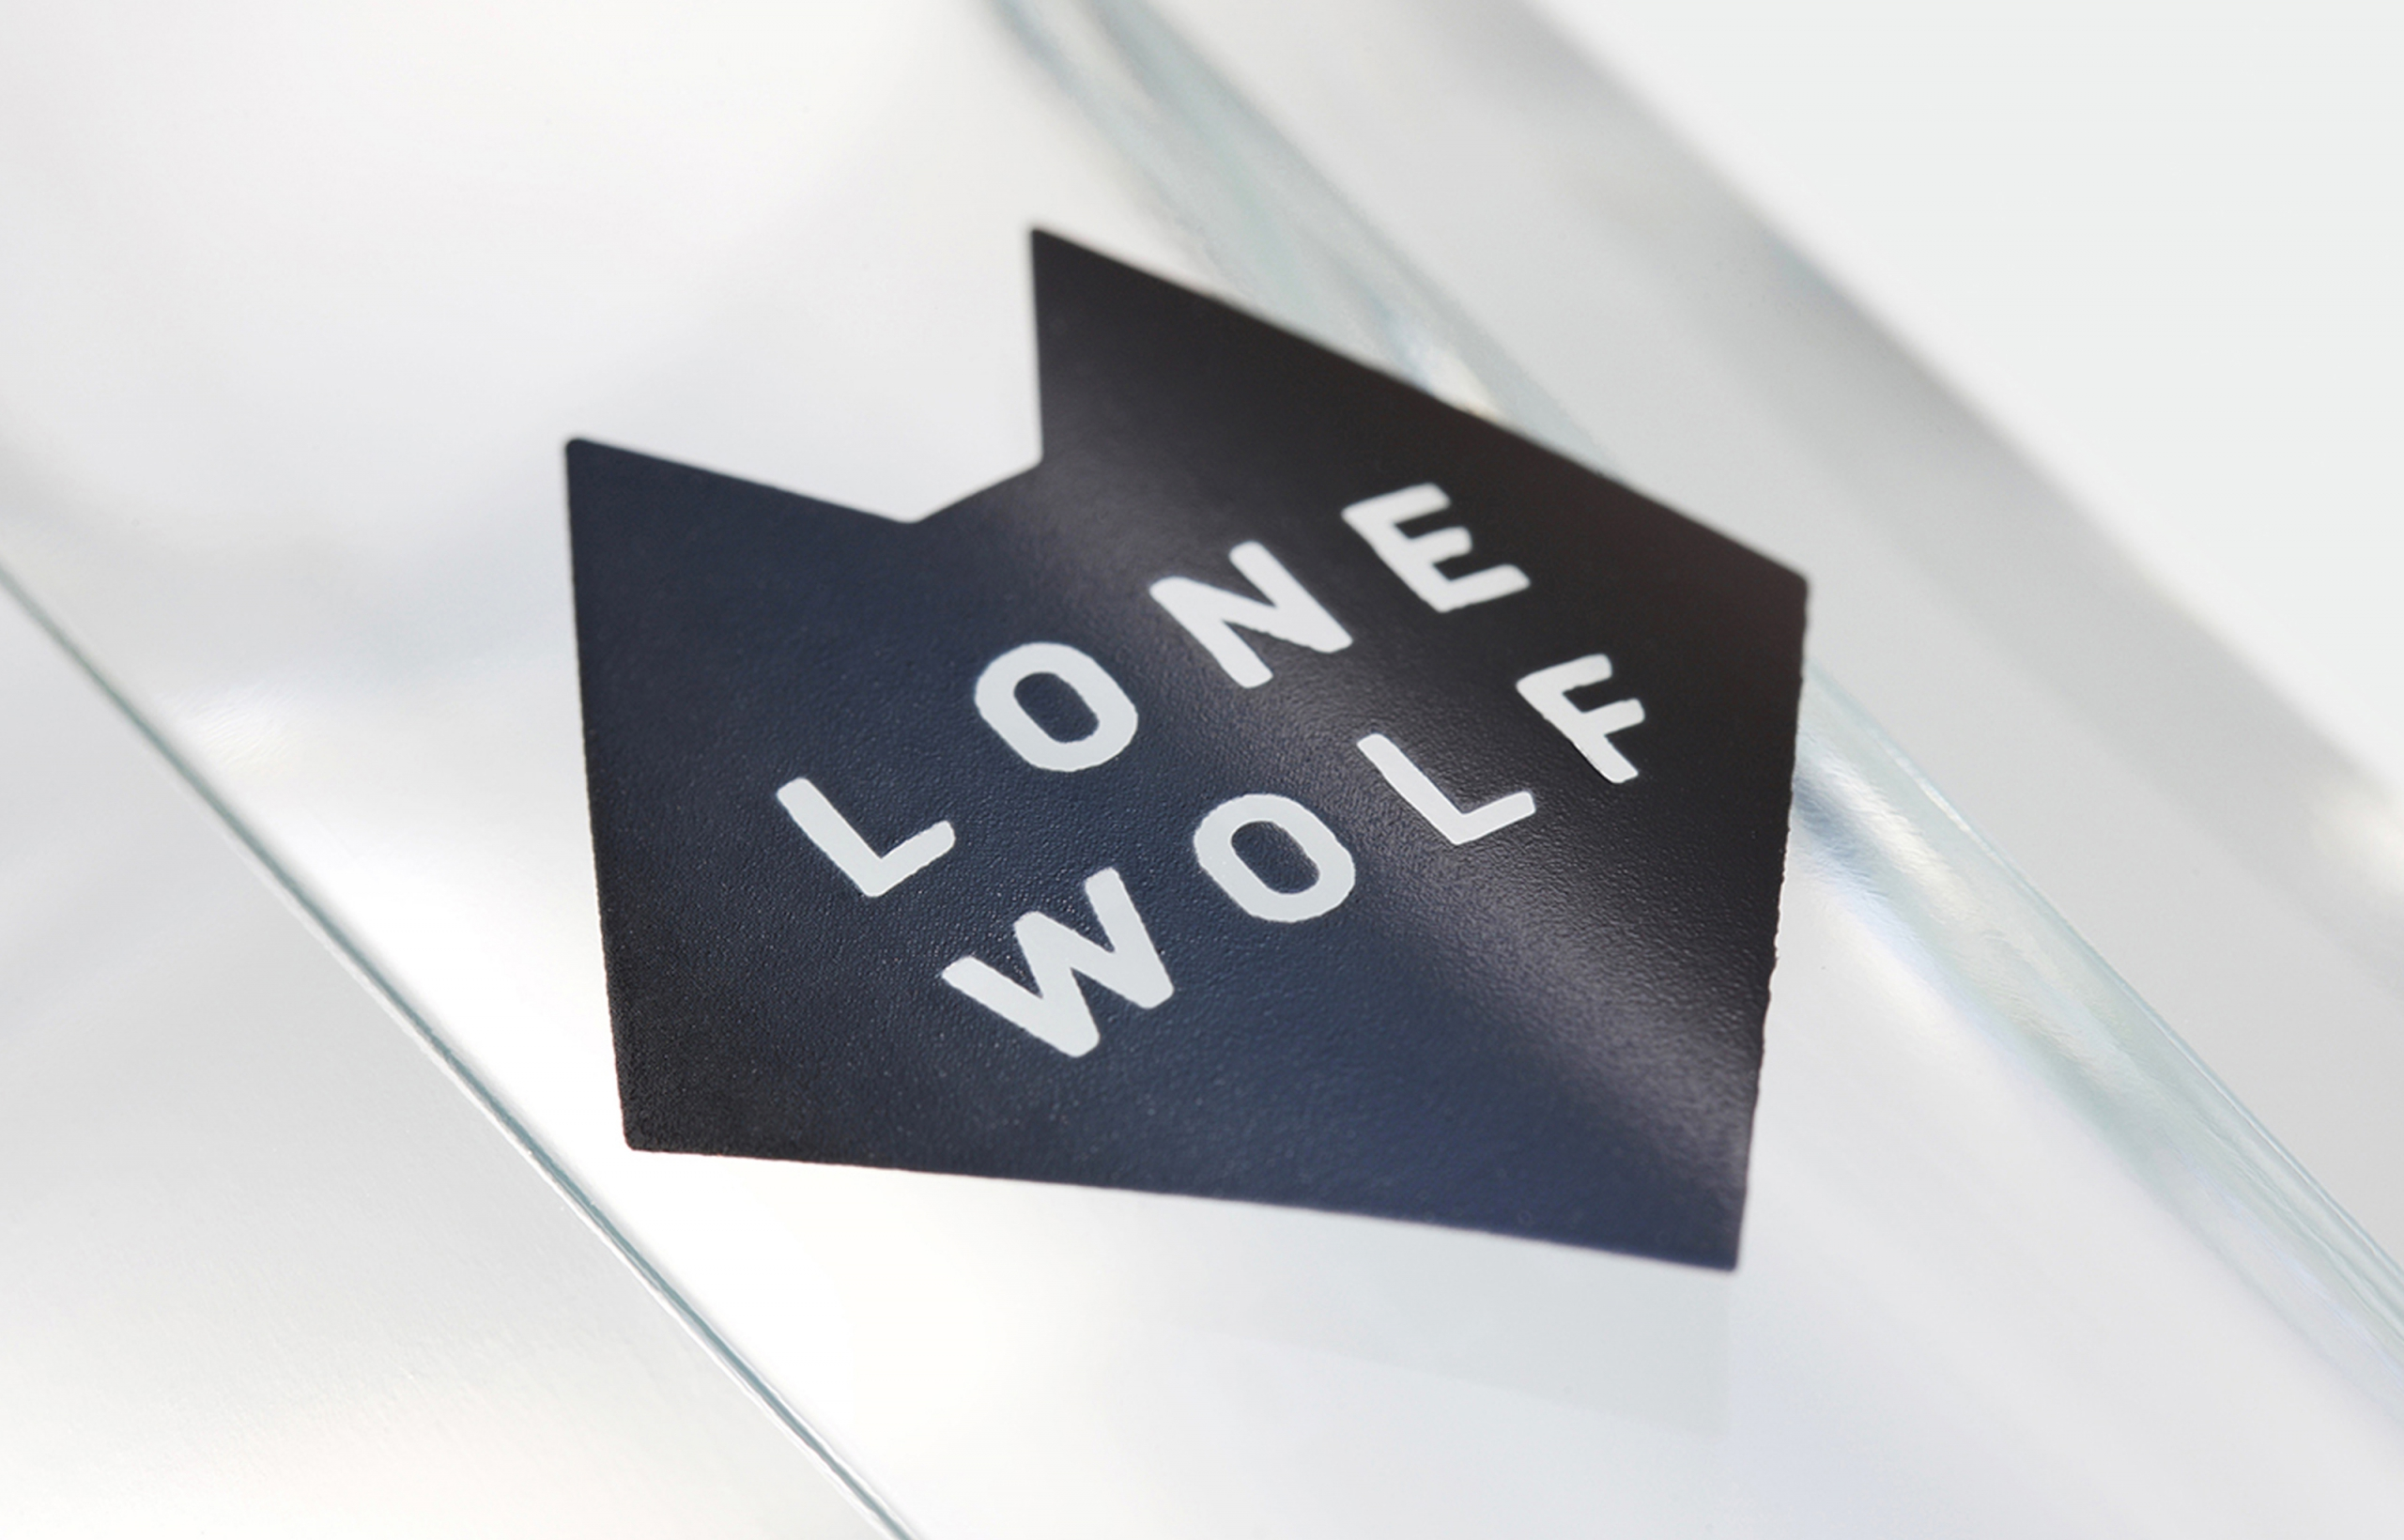 Lonewolf Logo On Bottle